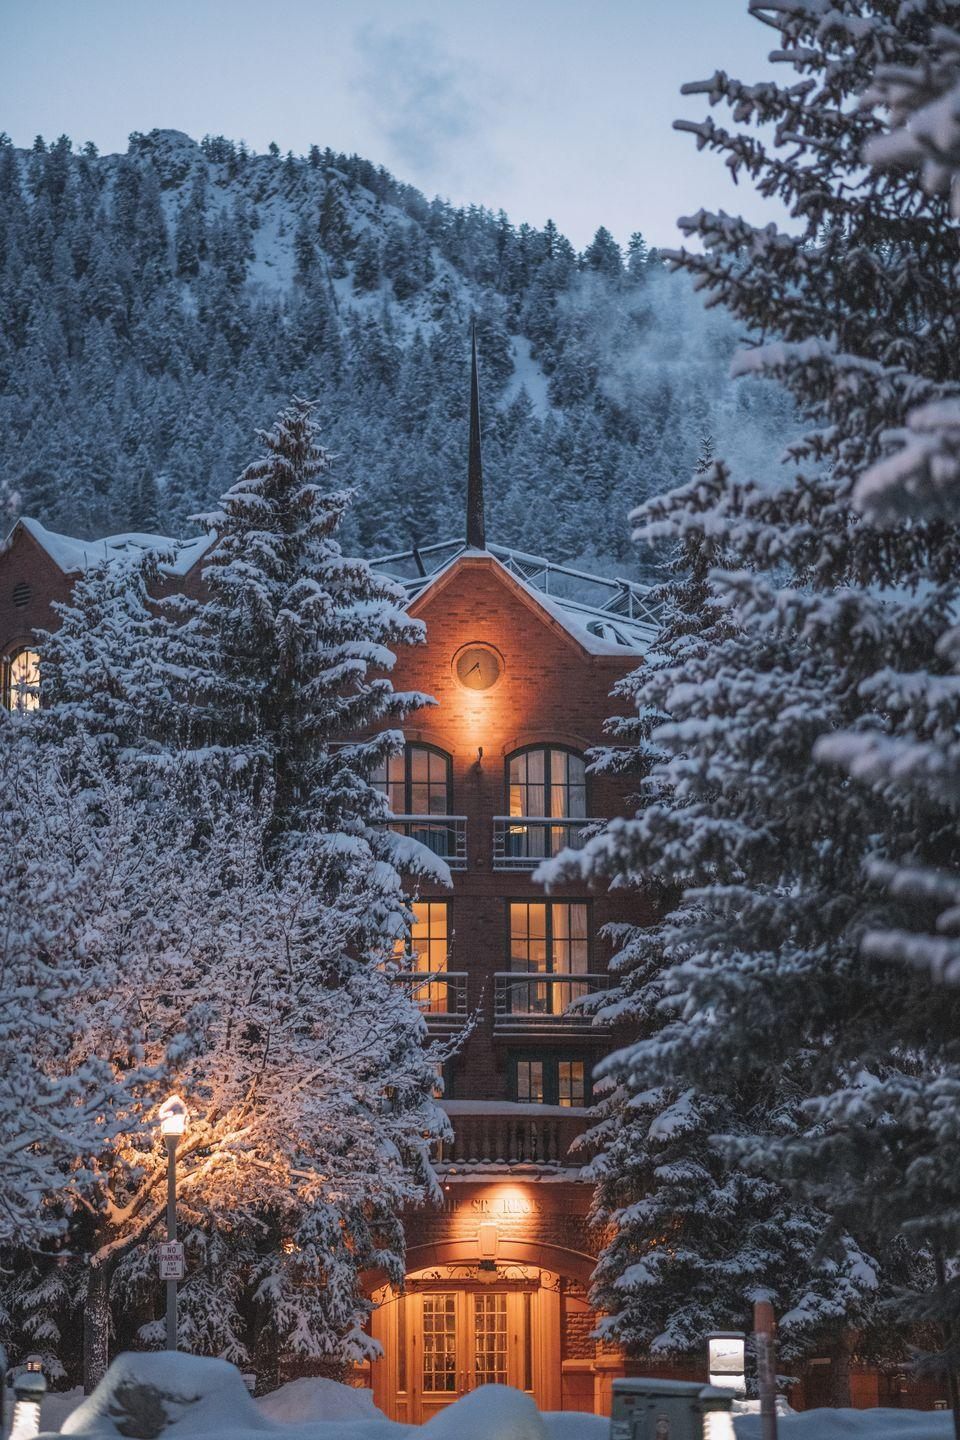 "<p>This chic ski town offers everything you need for a cozy Valentine's weekend trip. With a charming downtown that offers a lively balance of European Alpine and American West dining and drinks—along with fabulous shopping—après-ski is always just around the corner. </p><p><a href=""https://www.marriott.com/hotels/travel/asexr-the-st-regis-aspen-resort/"" rel=""nofollow noopener"" target=""_blank"" data-ylk=""slk:The St. Regis Aspen"" class=""link rapid-noclick-resp"">The St. Regis Aspen</a> offers delightful amenities for design enthusiasts, foodies, adrenaline-lovers, spa junkies, and everyone in between, making it an ideal place to foster your passions together while away. This Gilded Age mountain estate offers luxe amenities at every turn—exploring the majestic winter terrain in a BMW, a nightly (complimentary!) Champagne Sabering ceremony, a decadent spa, and endless winter activities to enjoy the best of The Rockies. </p>"